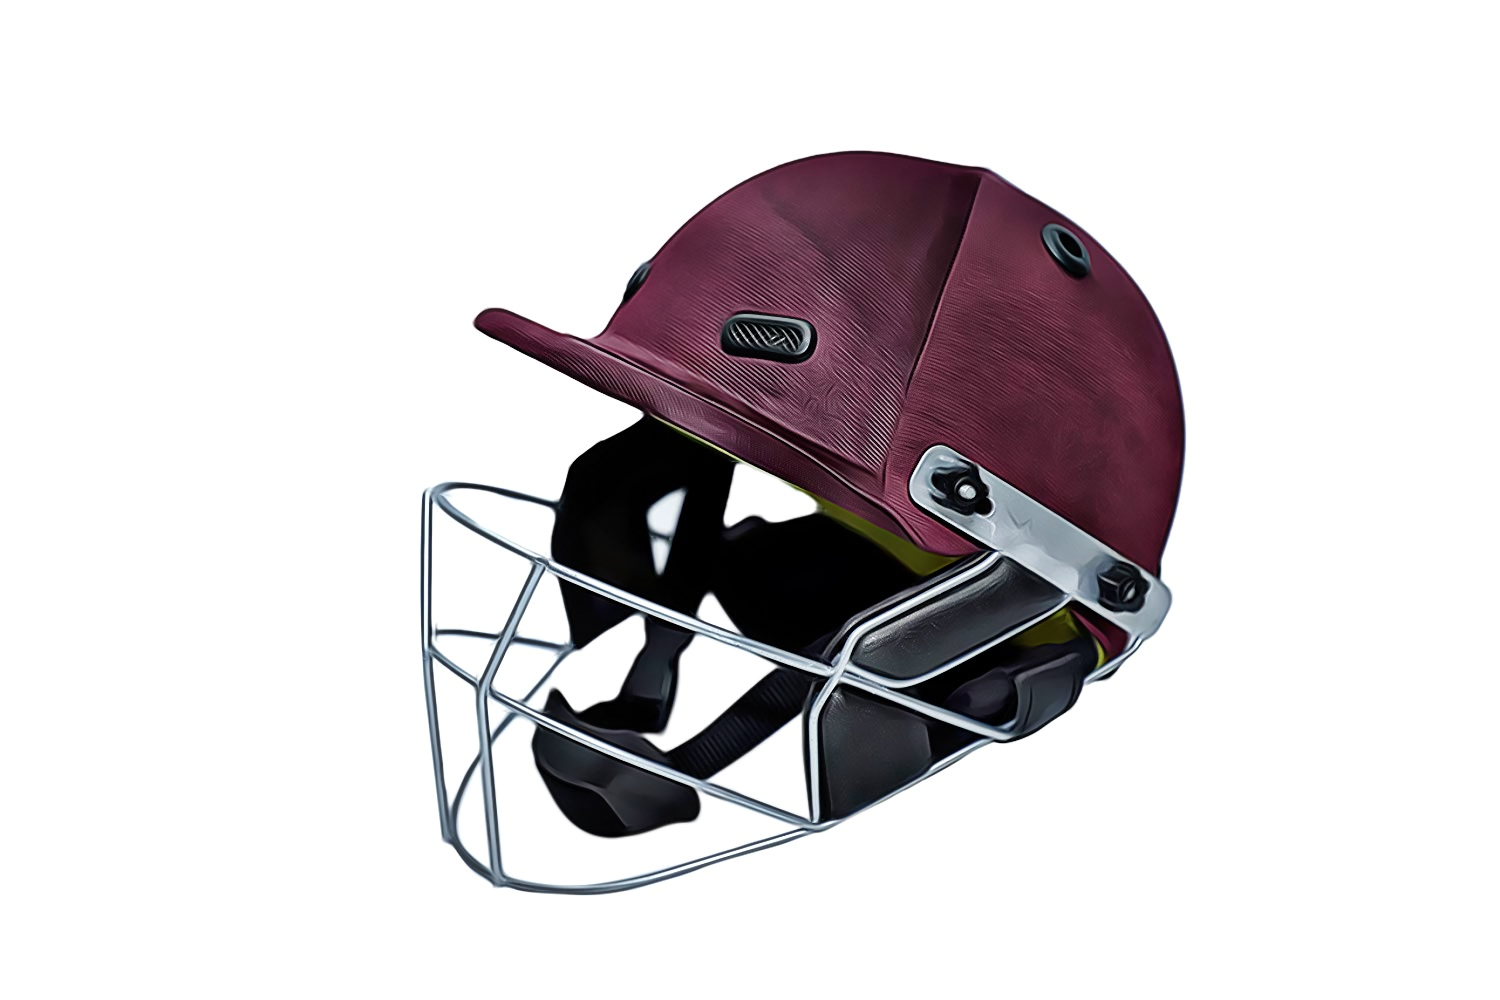 Klapp Armor Cricket Helmet with Back Head Protection